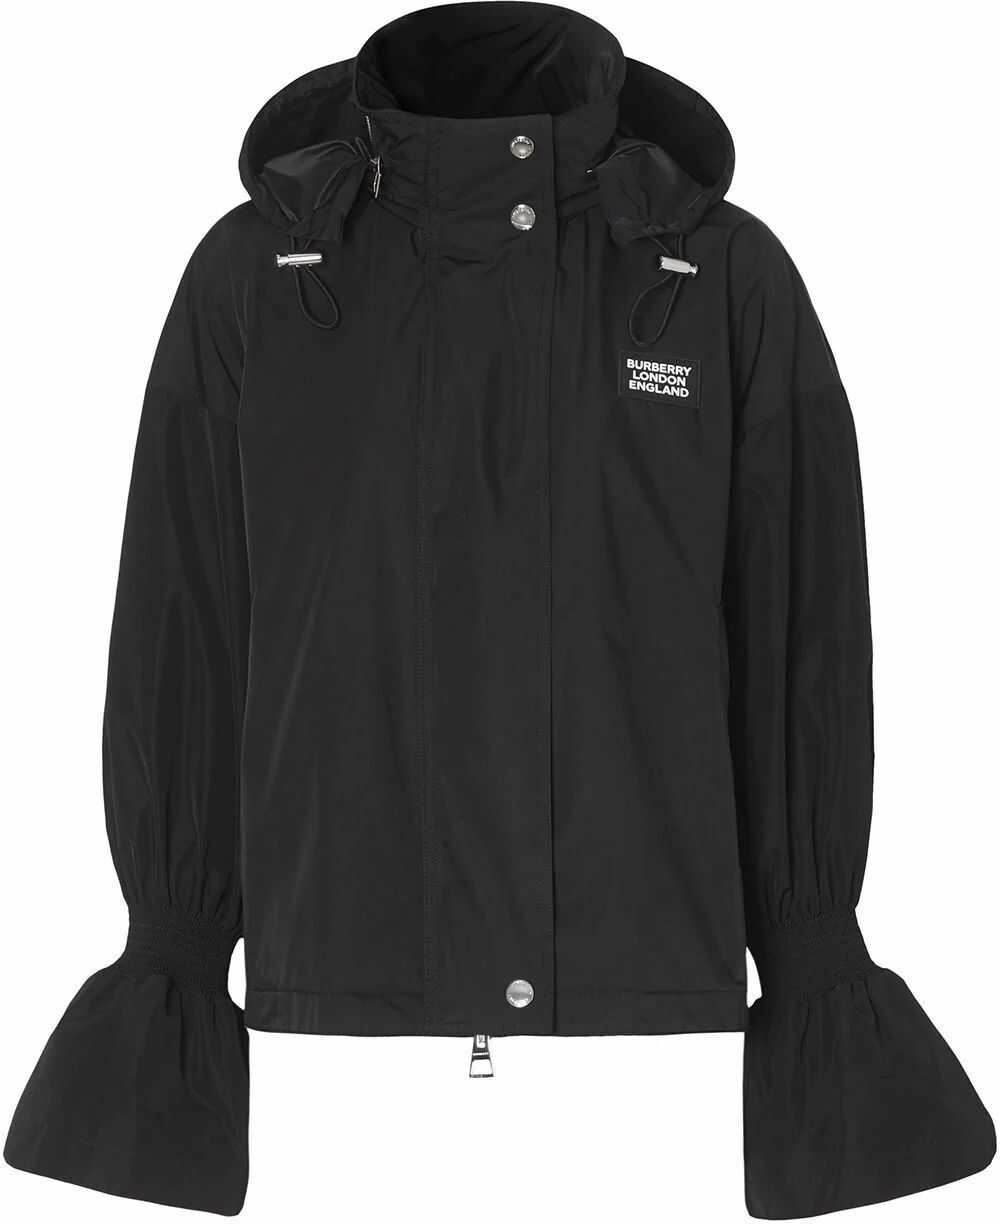 Burberry Polyester Outerwear Jacket BLACK